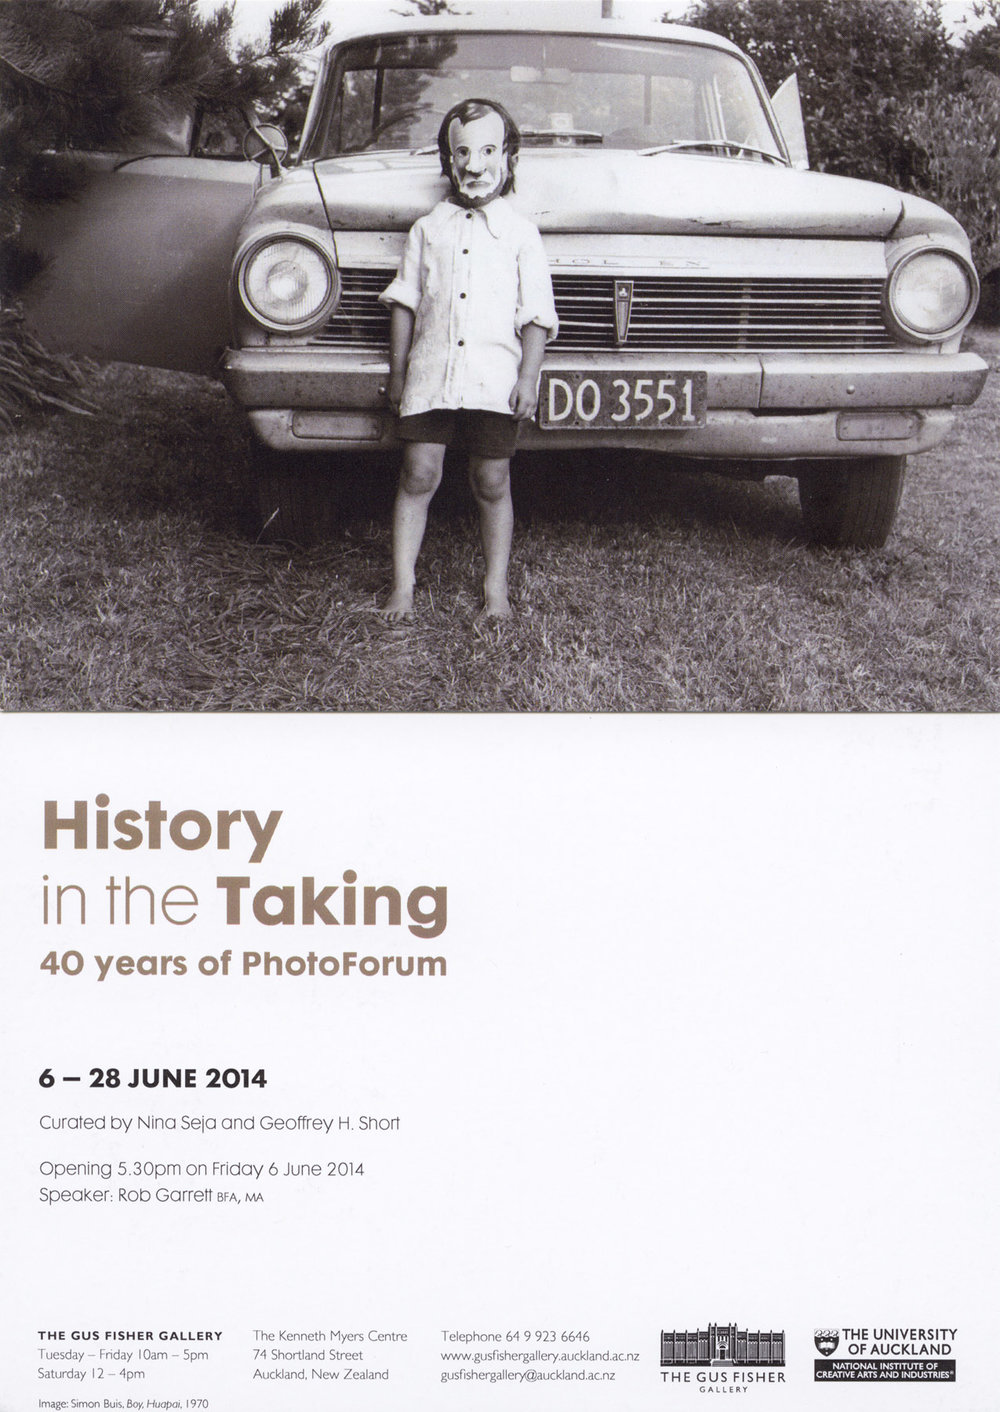 Postcard for 'History in the Taking - 40 Years of PhotoForum' ex